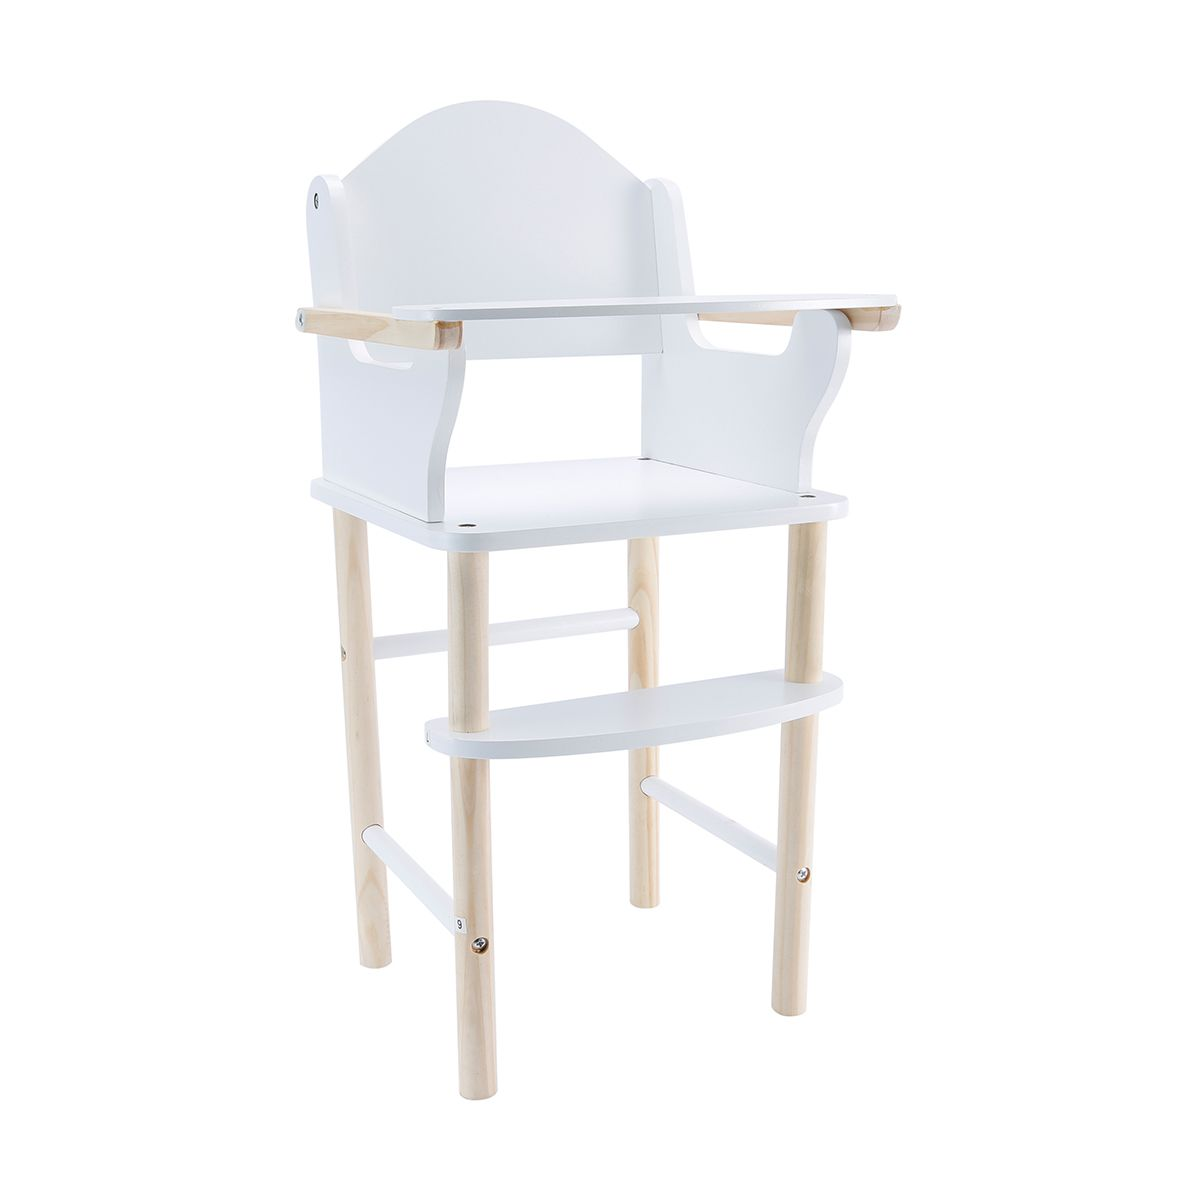 Wooden Highchair In 2020 Home Decor Chair Furniture